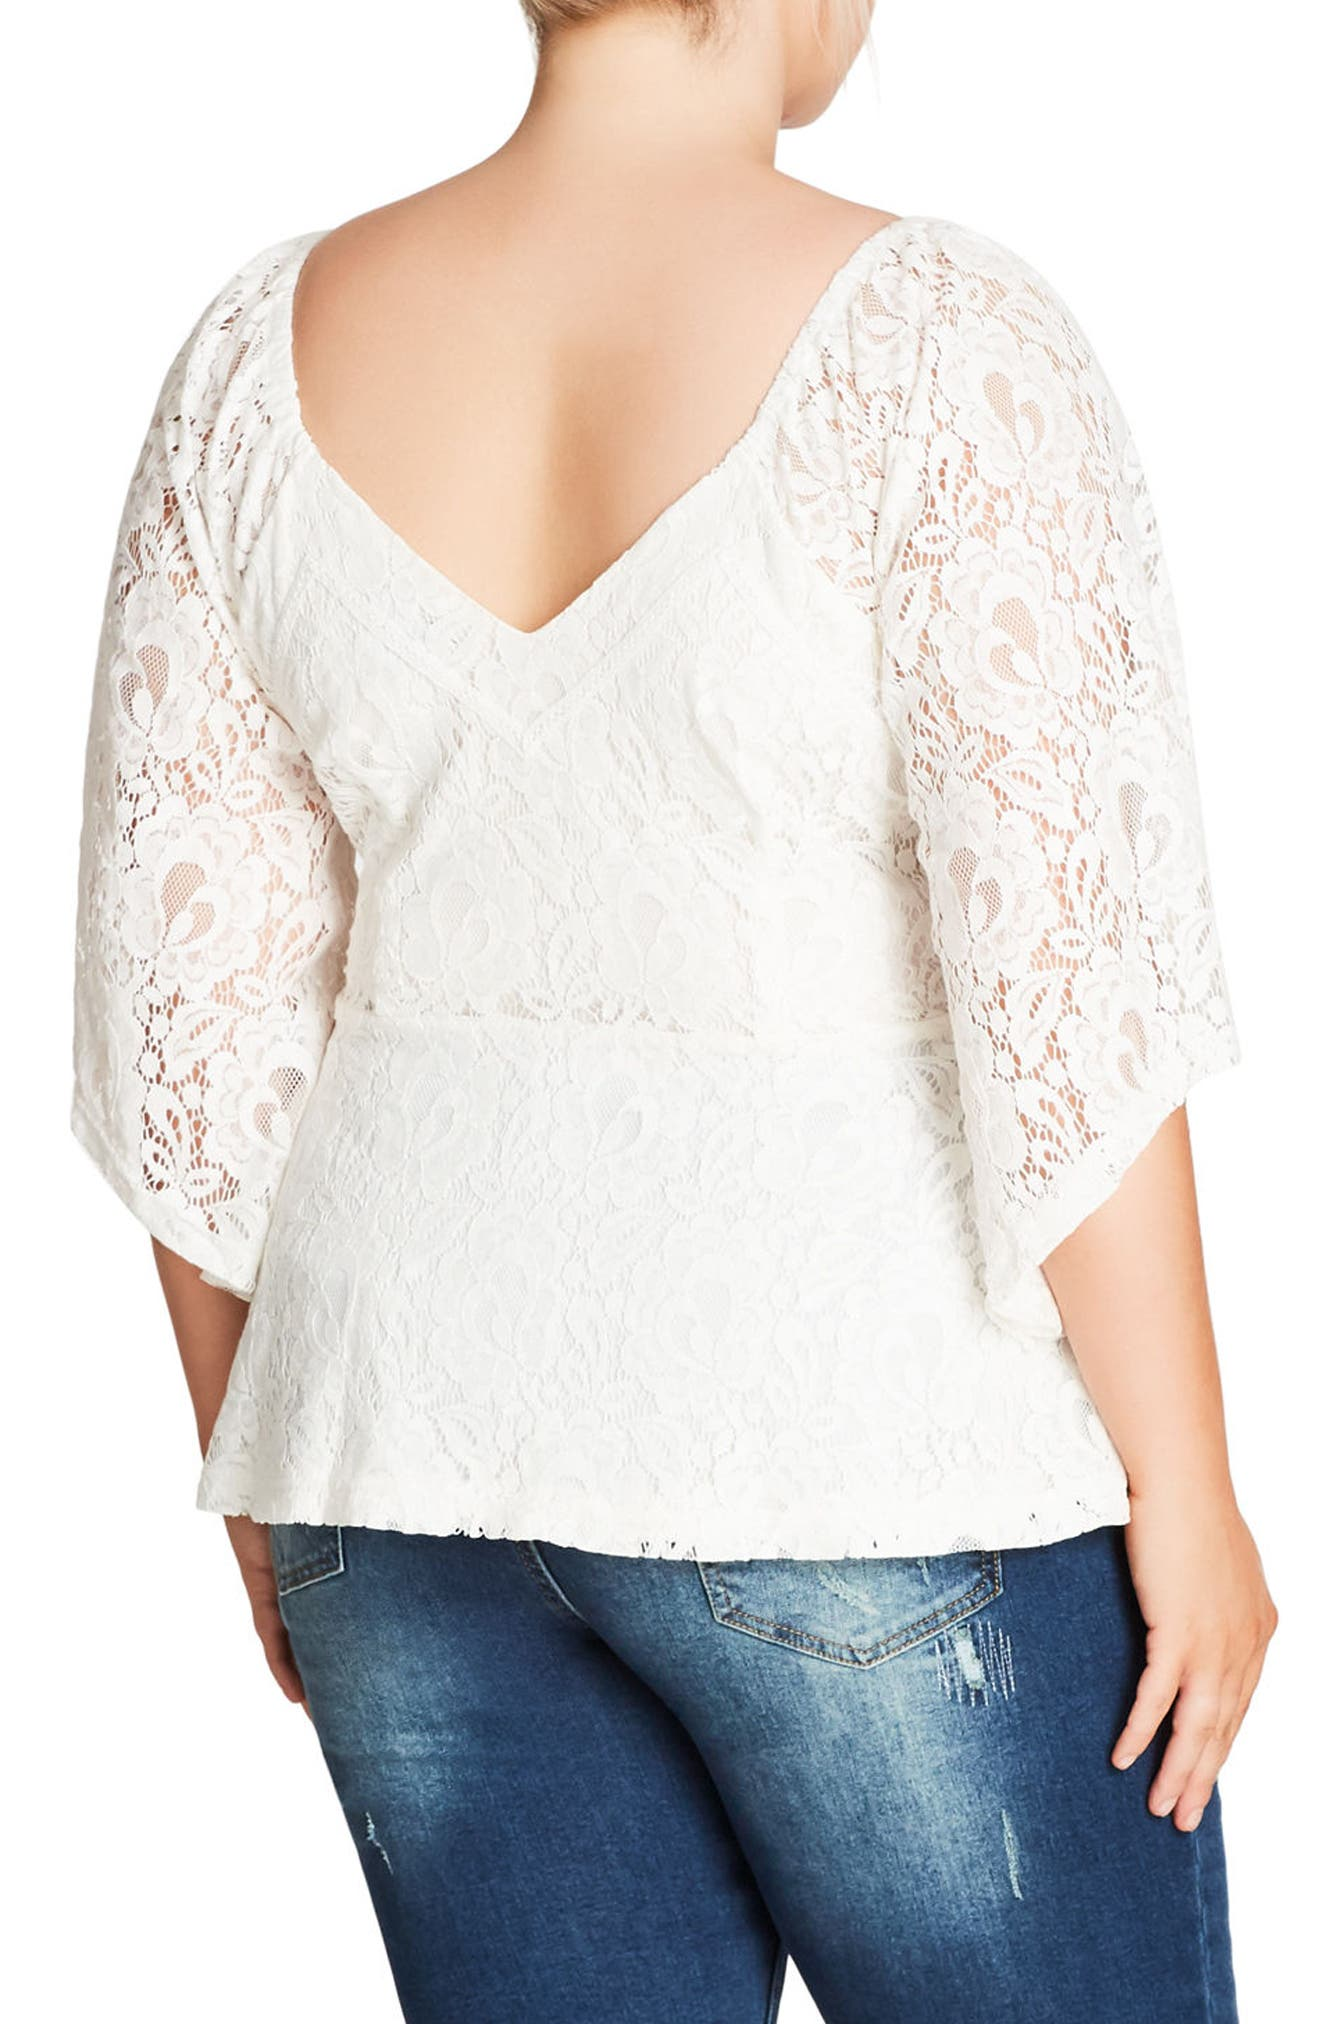 Sheer Romance Lace Top,                             Alternate thumbnail 2, color,                             Ivory